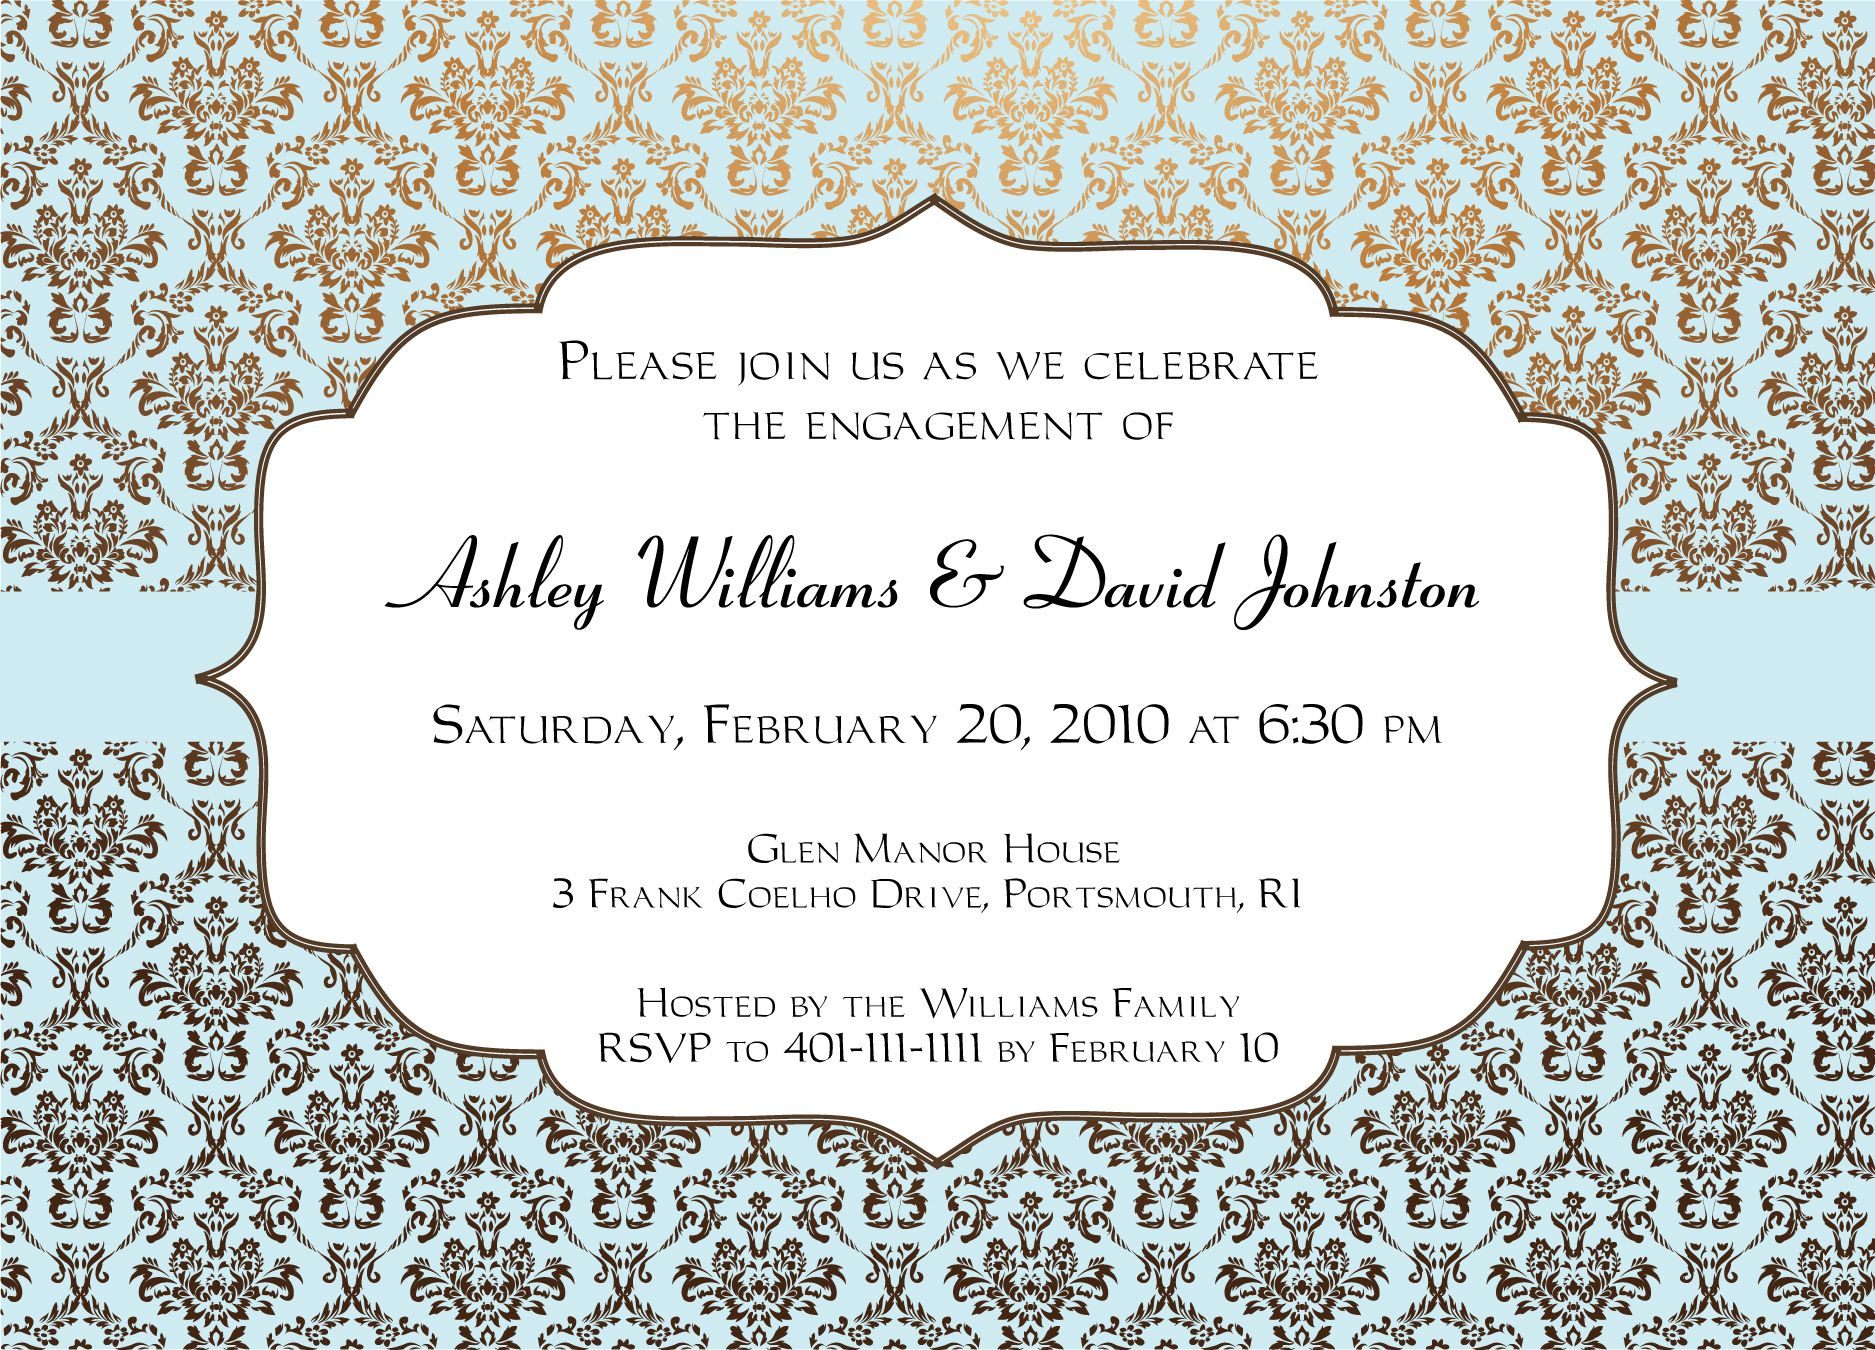 Engagement Party Invitations Templates |  Invitation Templates - Free Printable Engagement Party Invitations